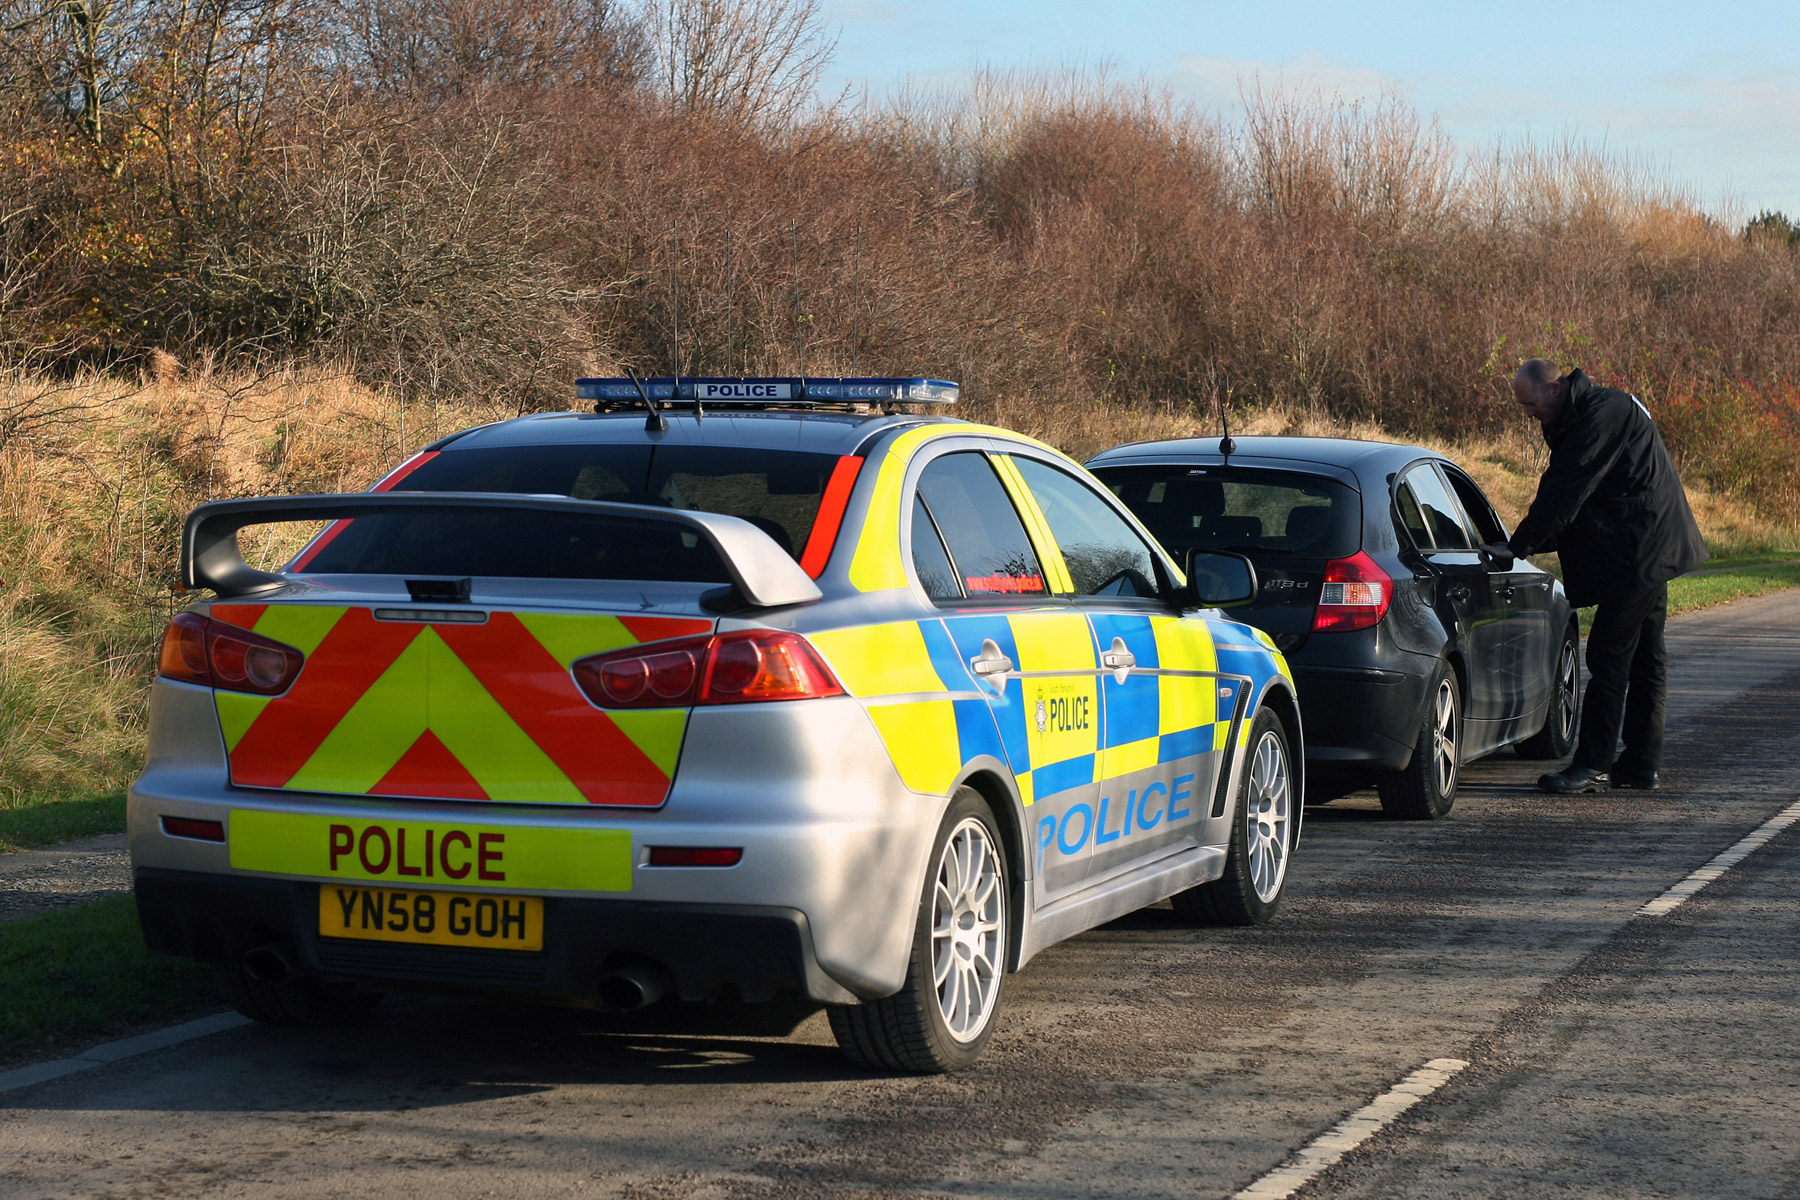 Young drivers warned: lie about your insurance and lose your car